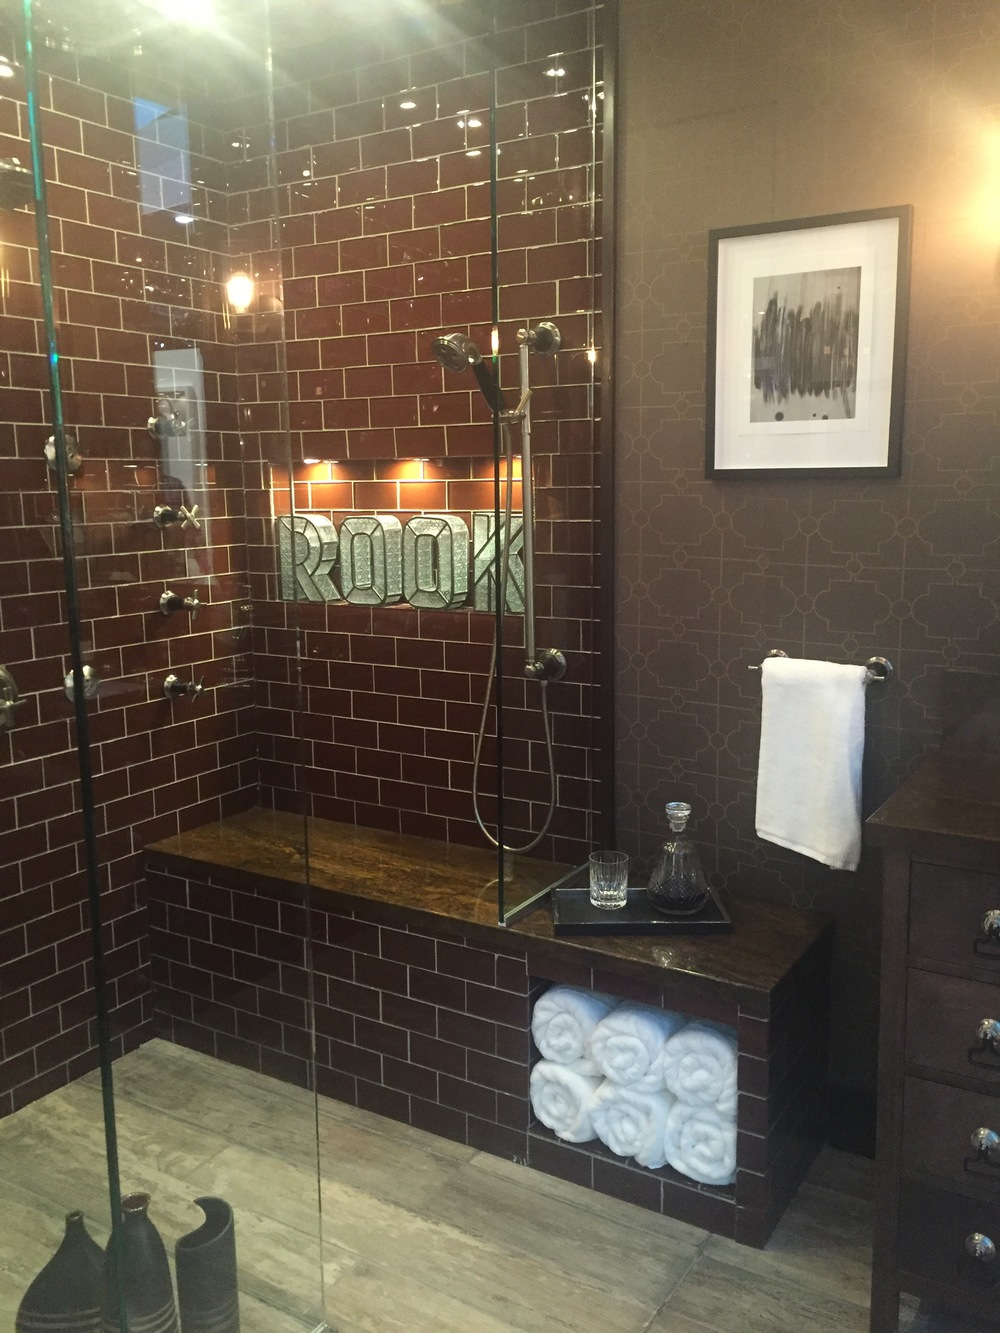 Shower space at KBIS, Las Vegas 2016